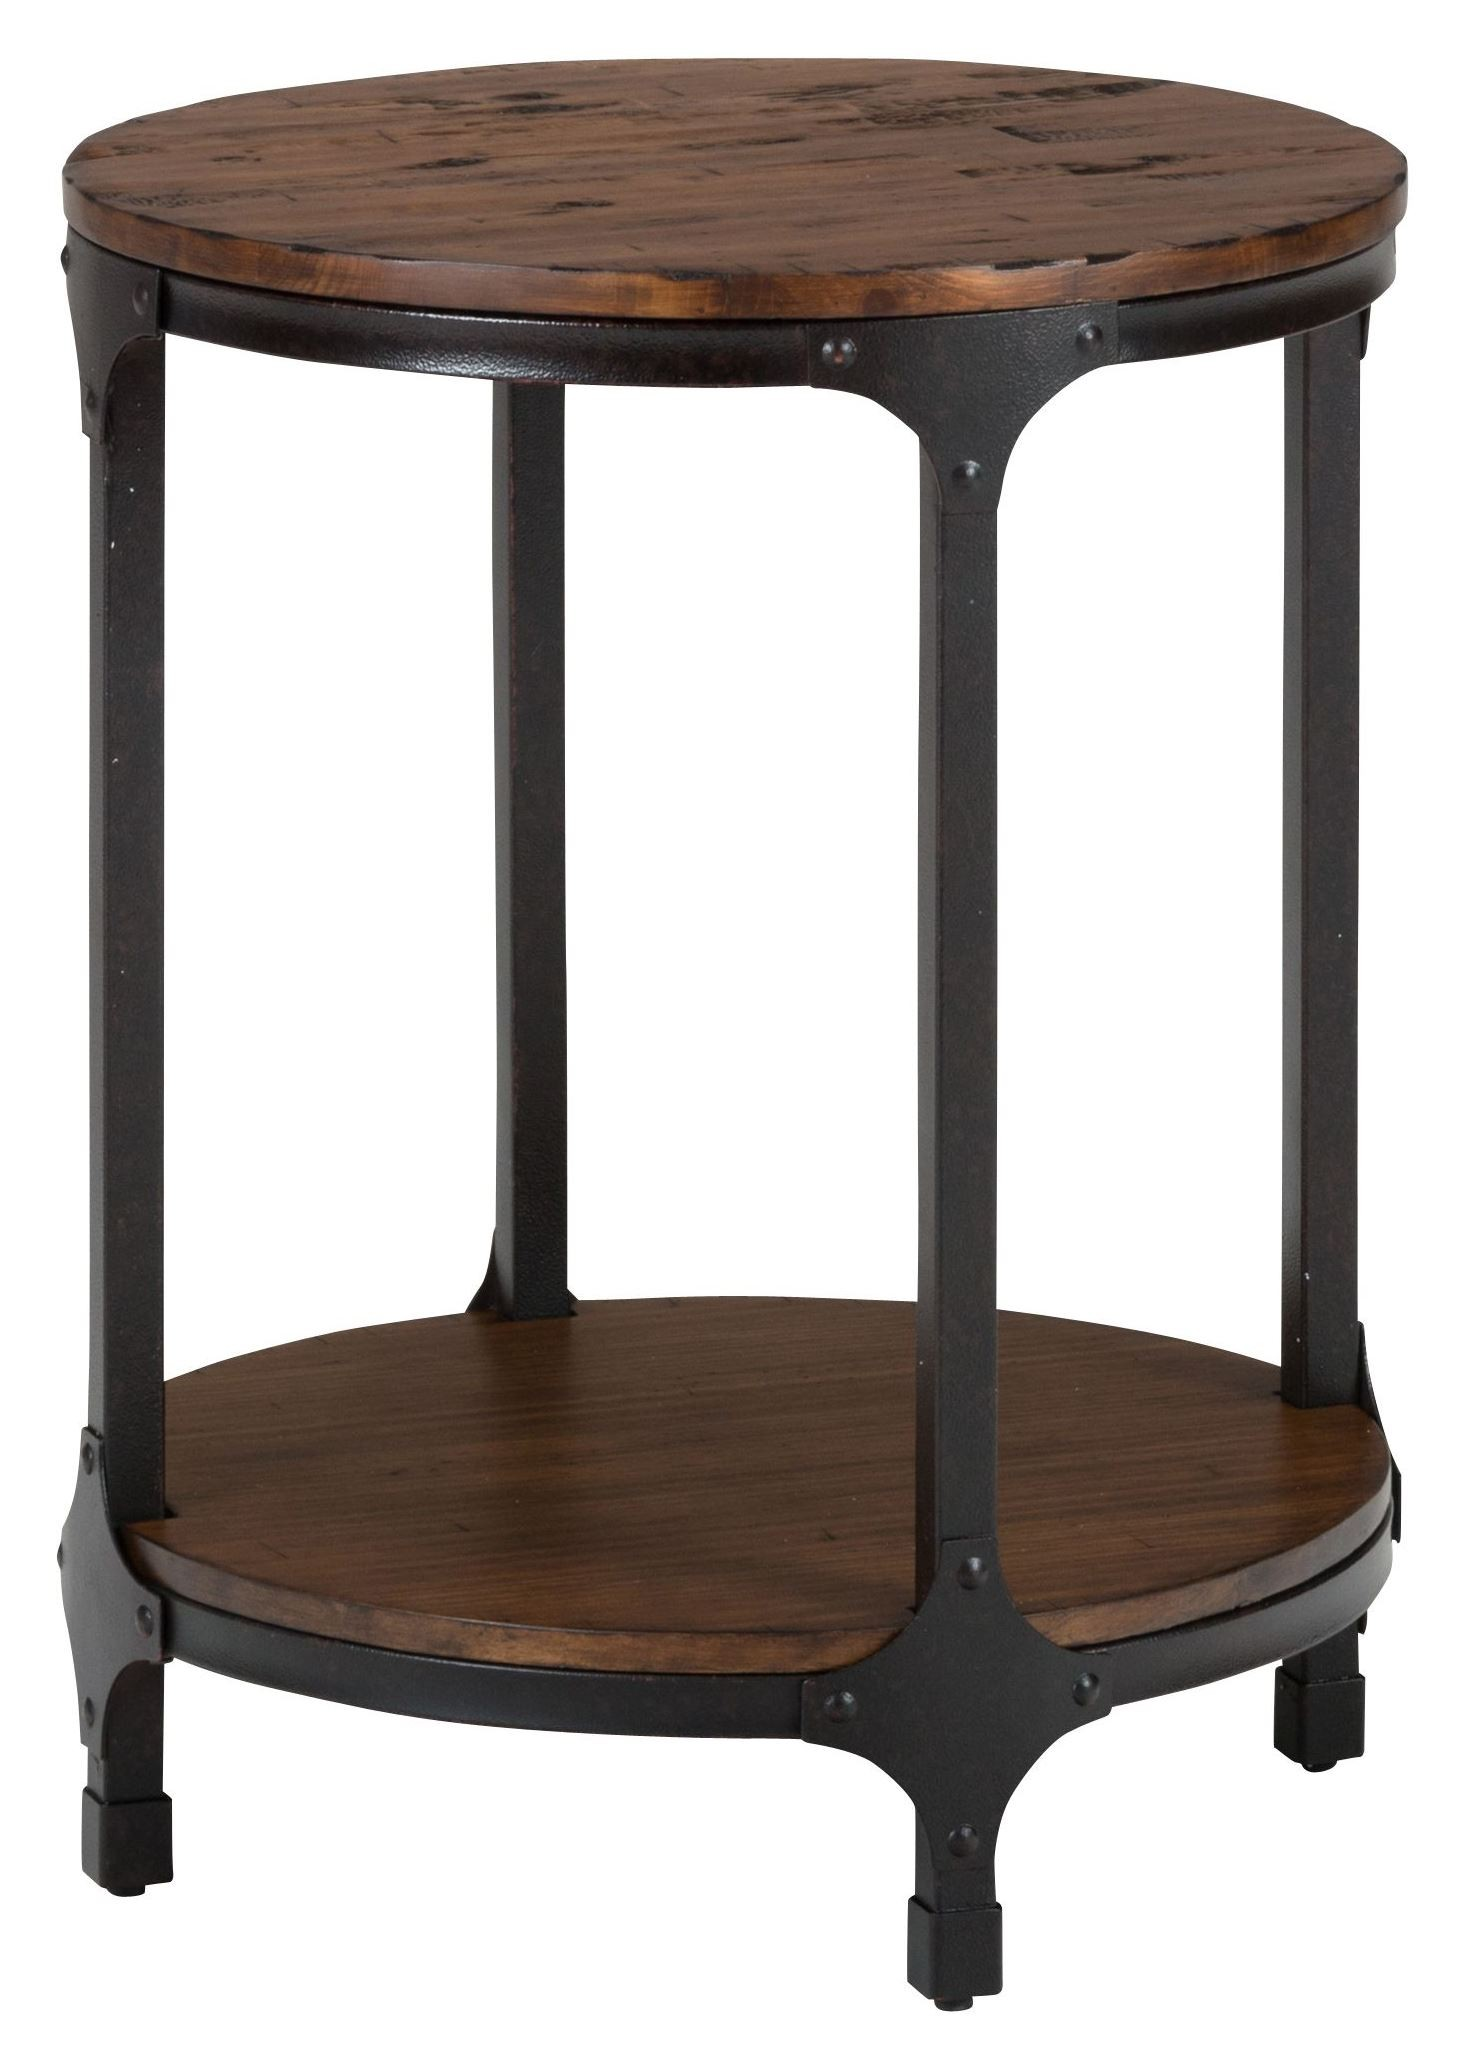 Urban nature round chairside table 785 6 jofran for Chairside table